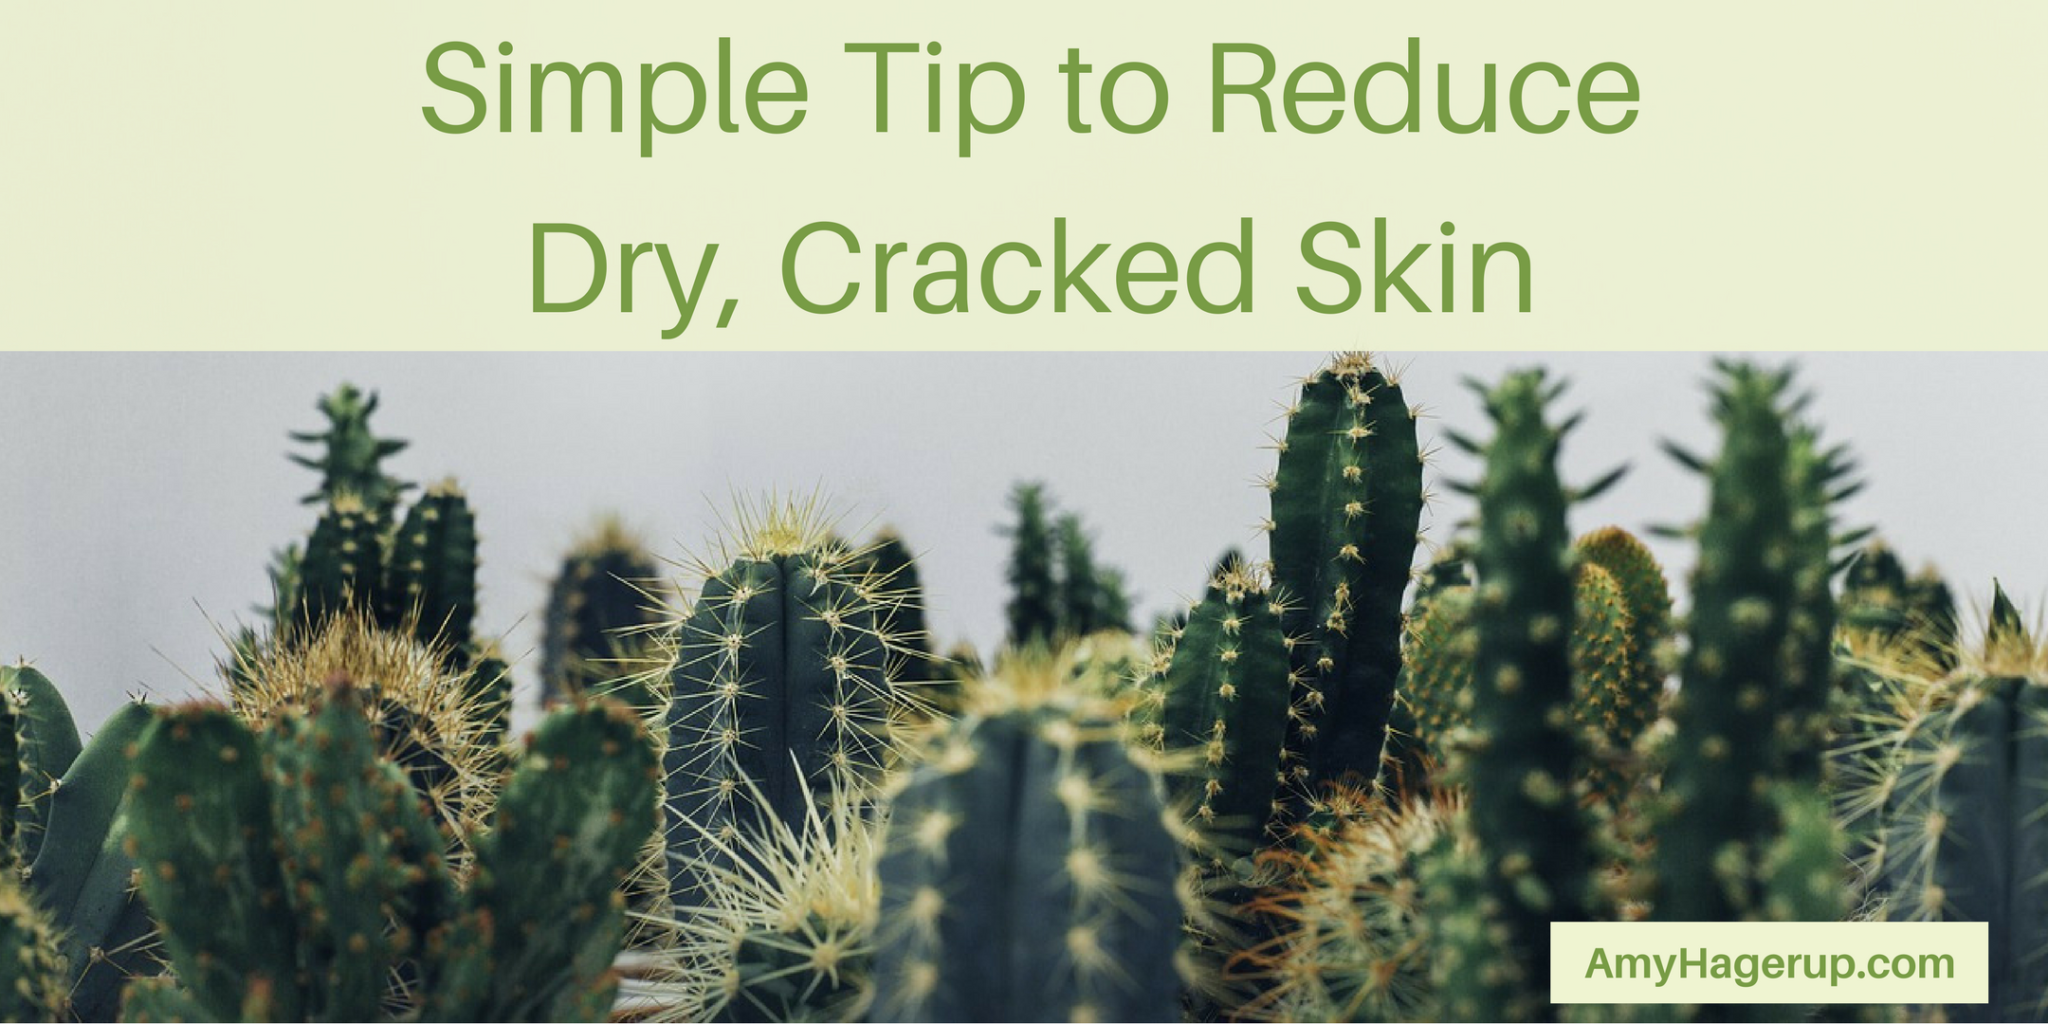 Check out this tip to reduce dry, cracked skin